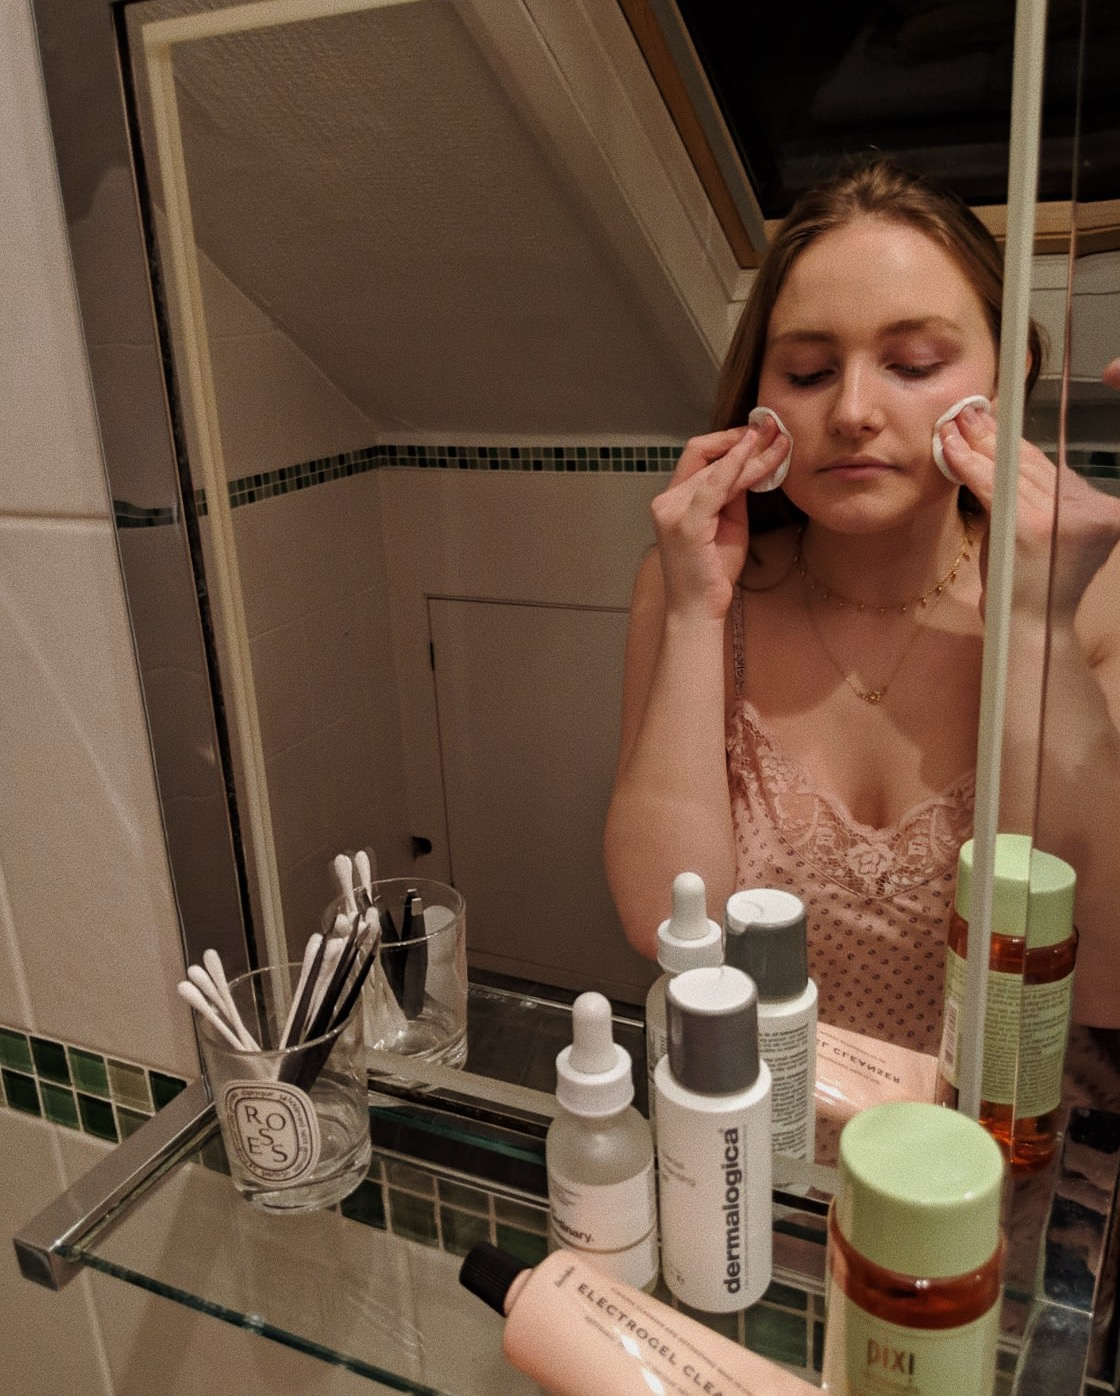 A Relaxing Evening Routine   Skincare and Ways To Wind Down3.JPG